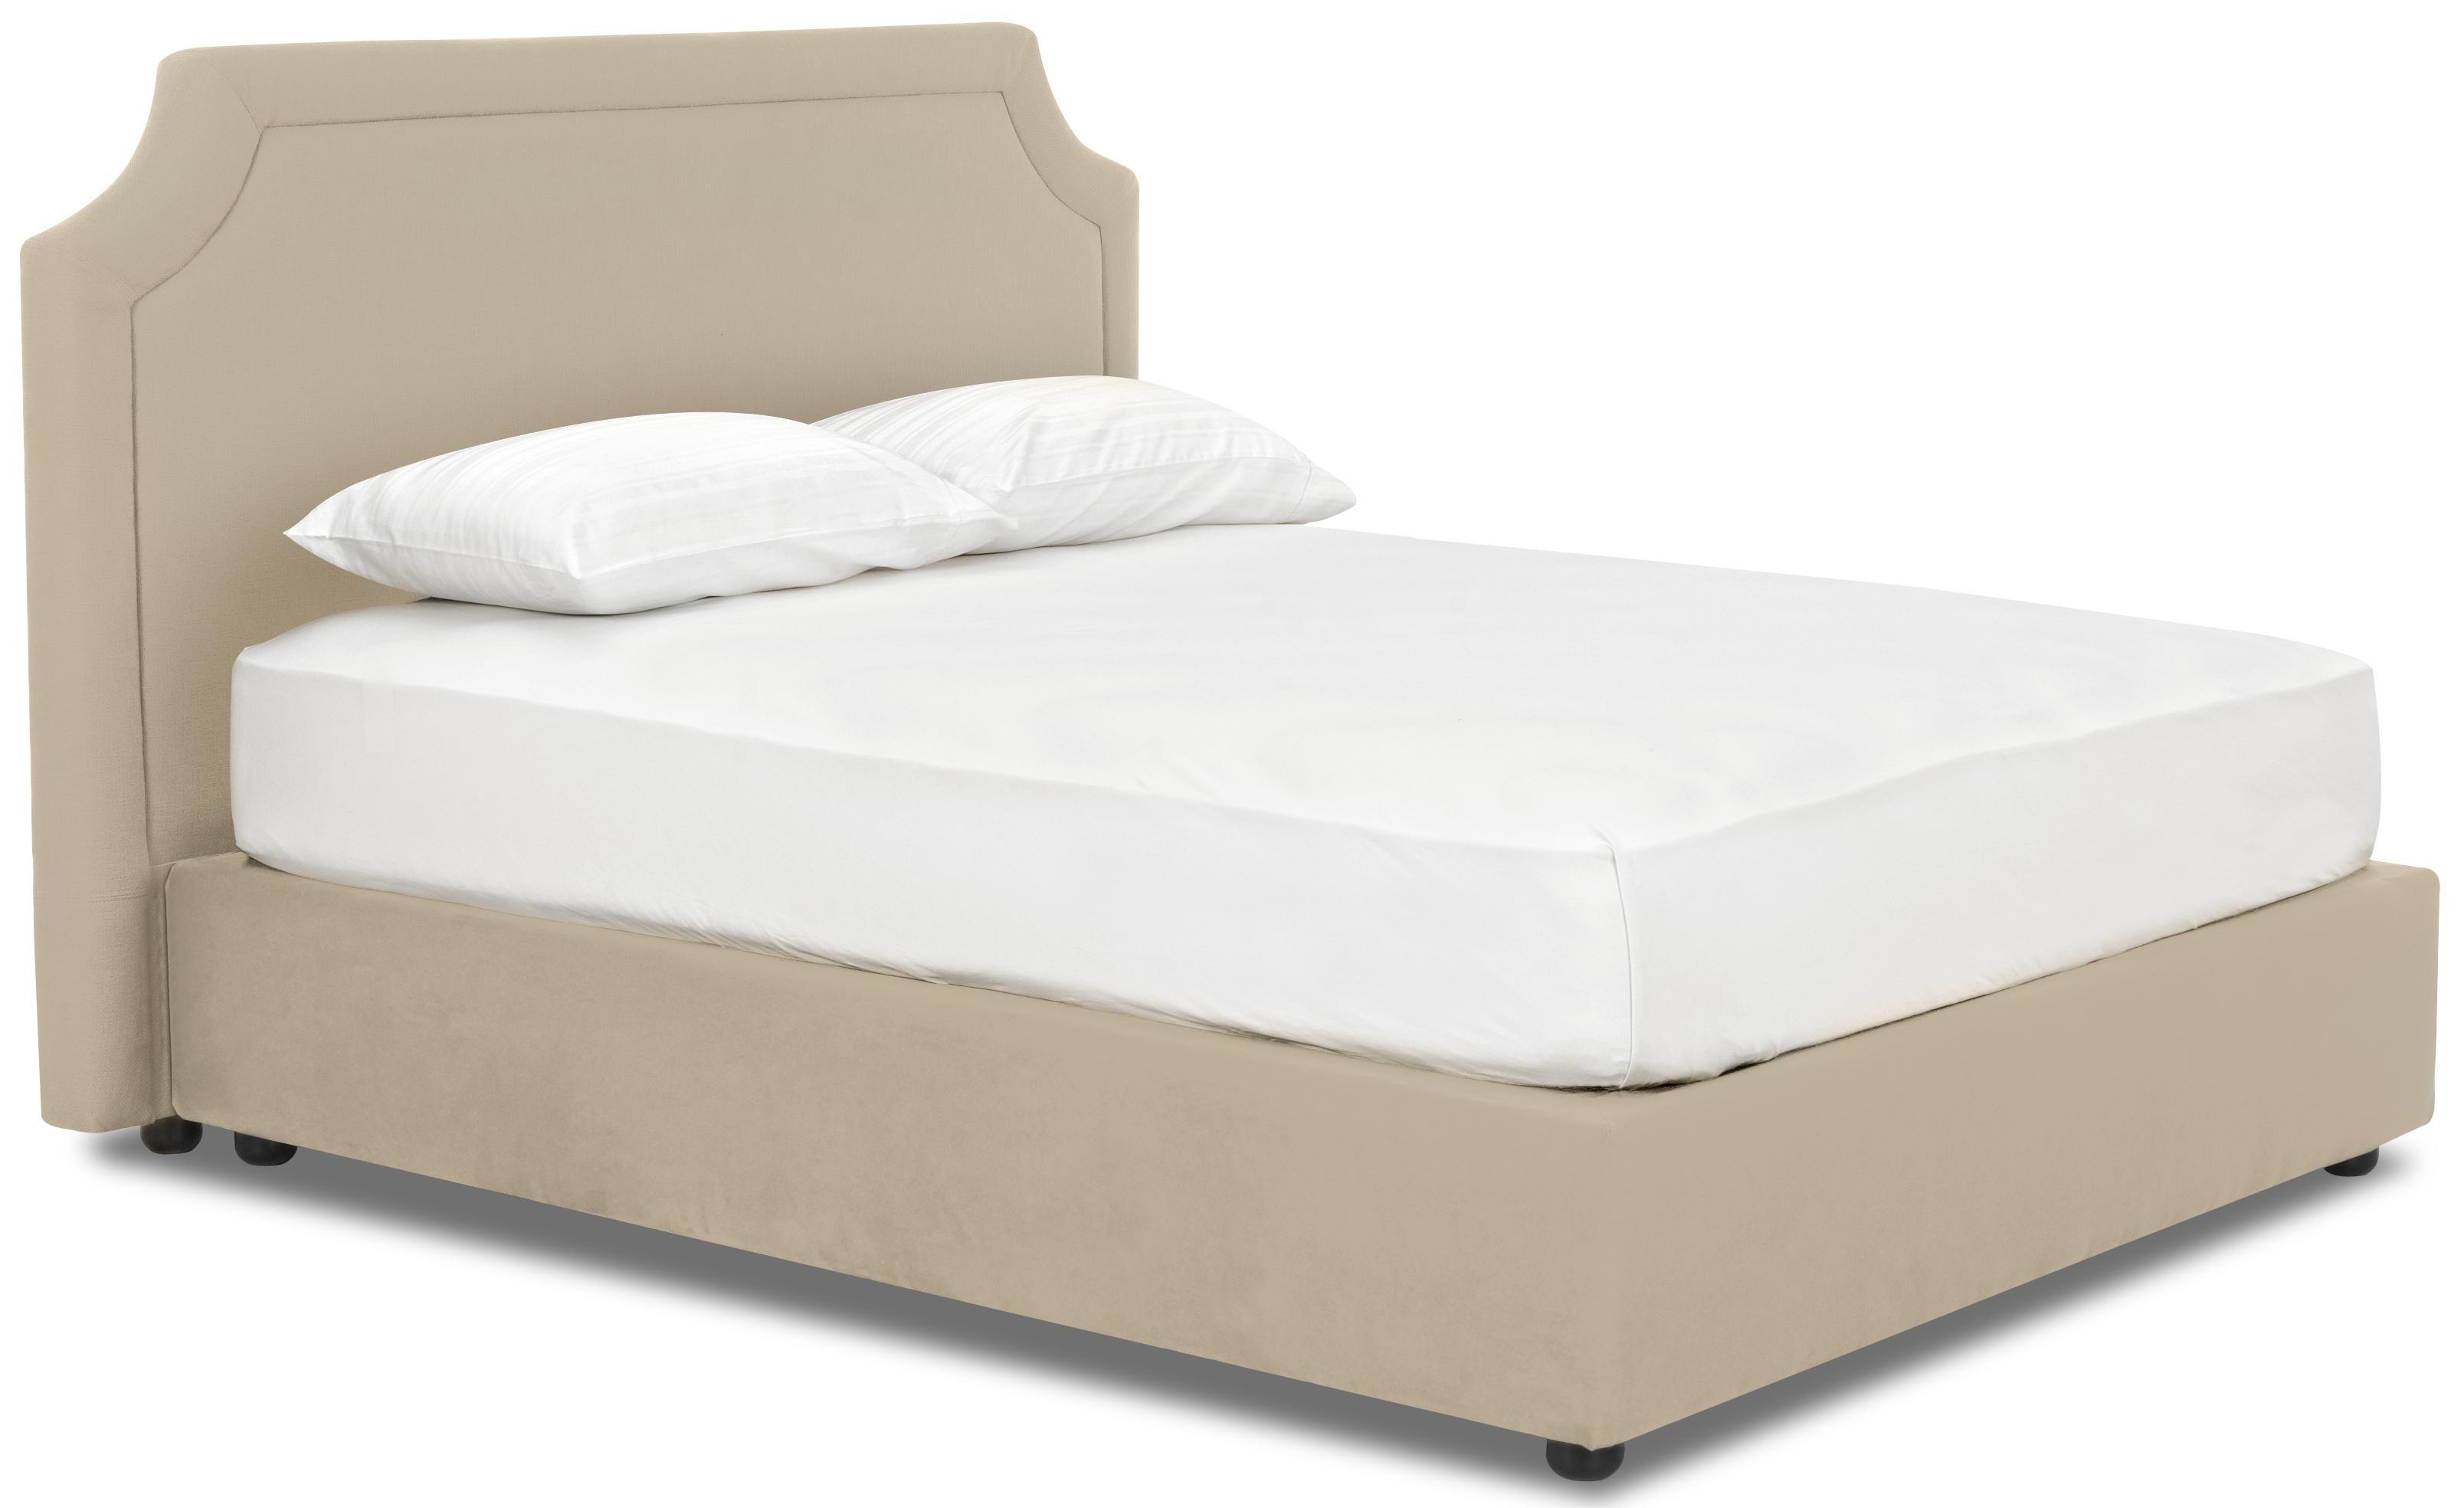 Upholstered Beds and Headboards Queen Upholstered Bed by Klaussner at Northeast Factory Direct